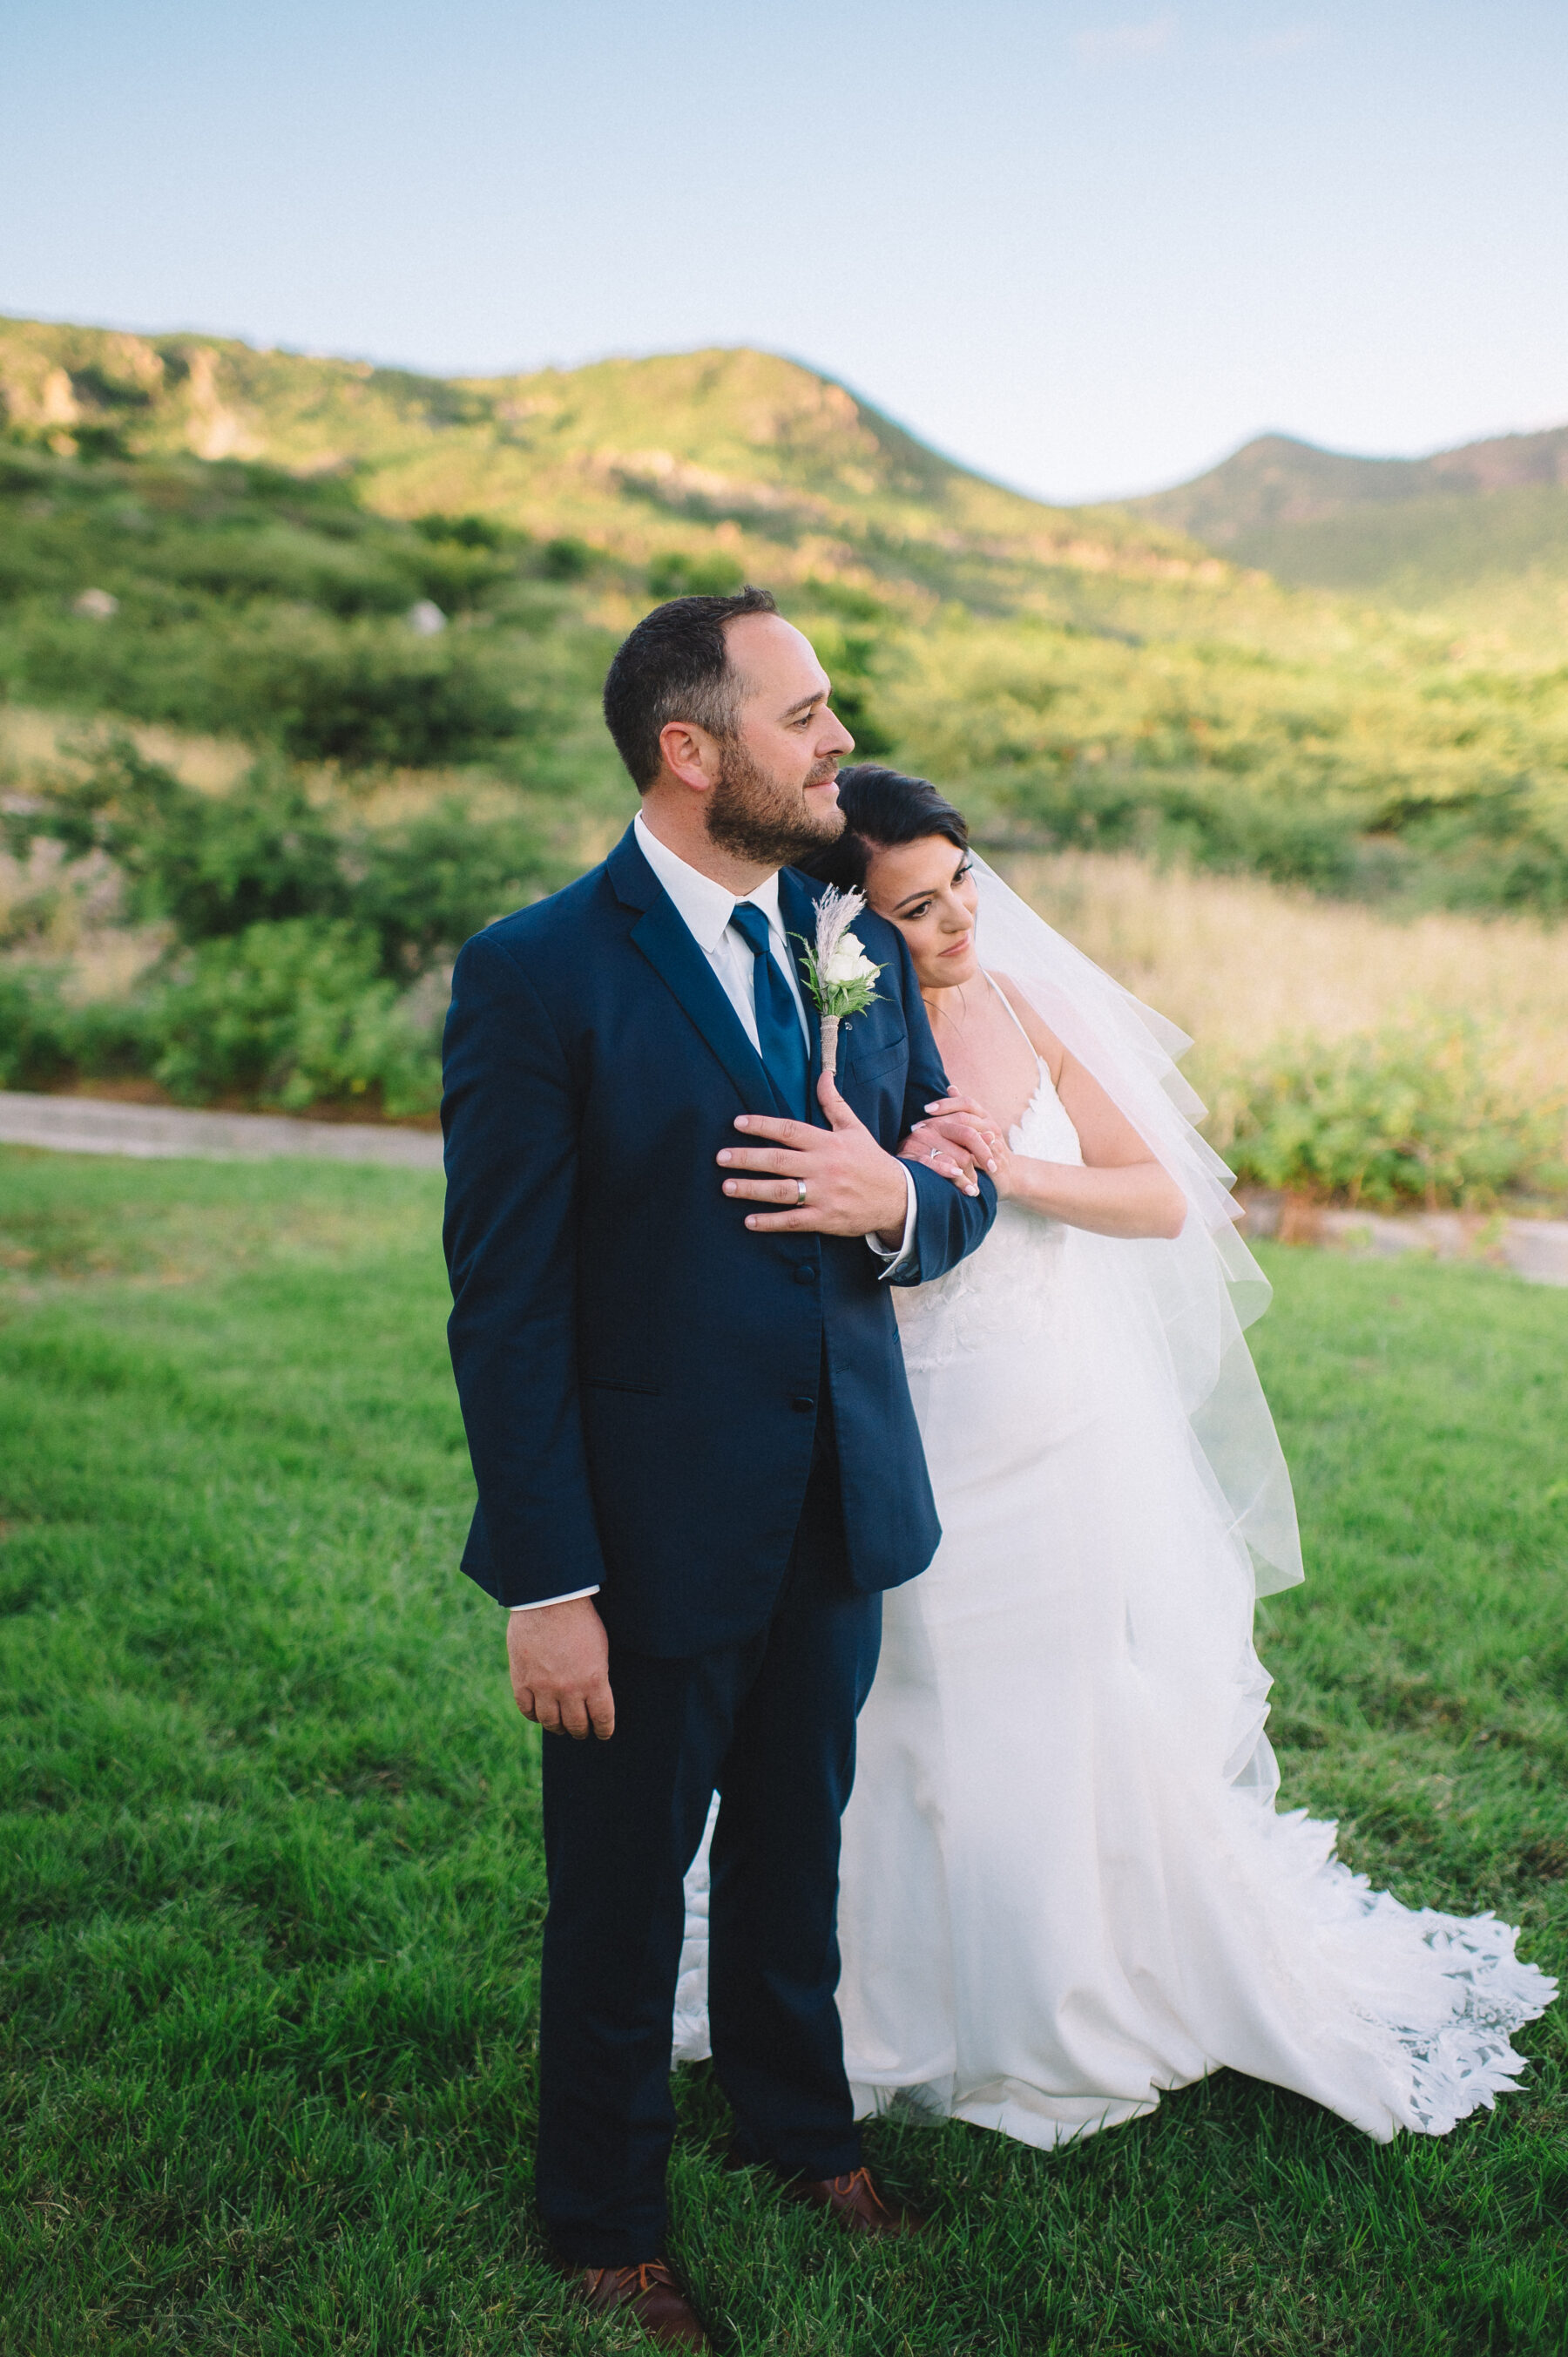 Couples photography: Intimate Caribbean Wedding by Details Nashville